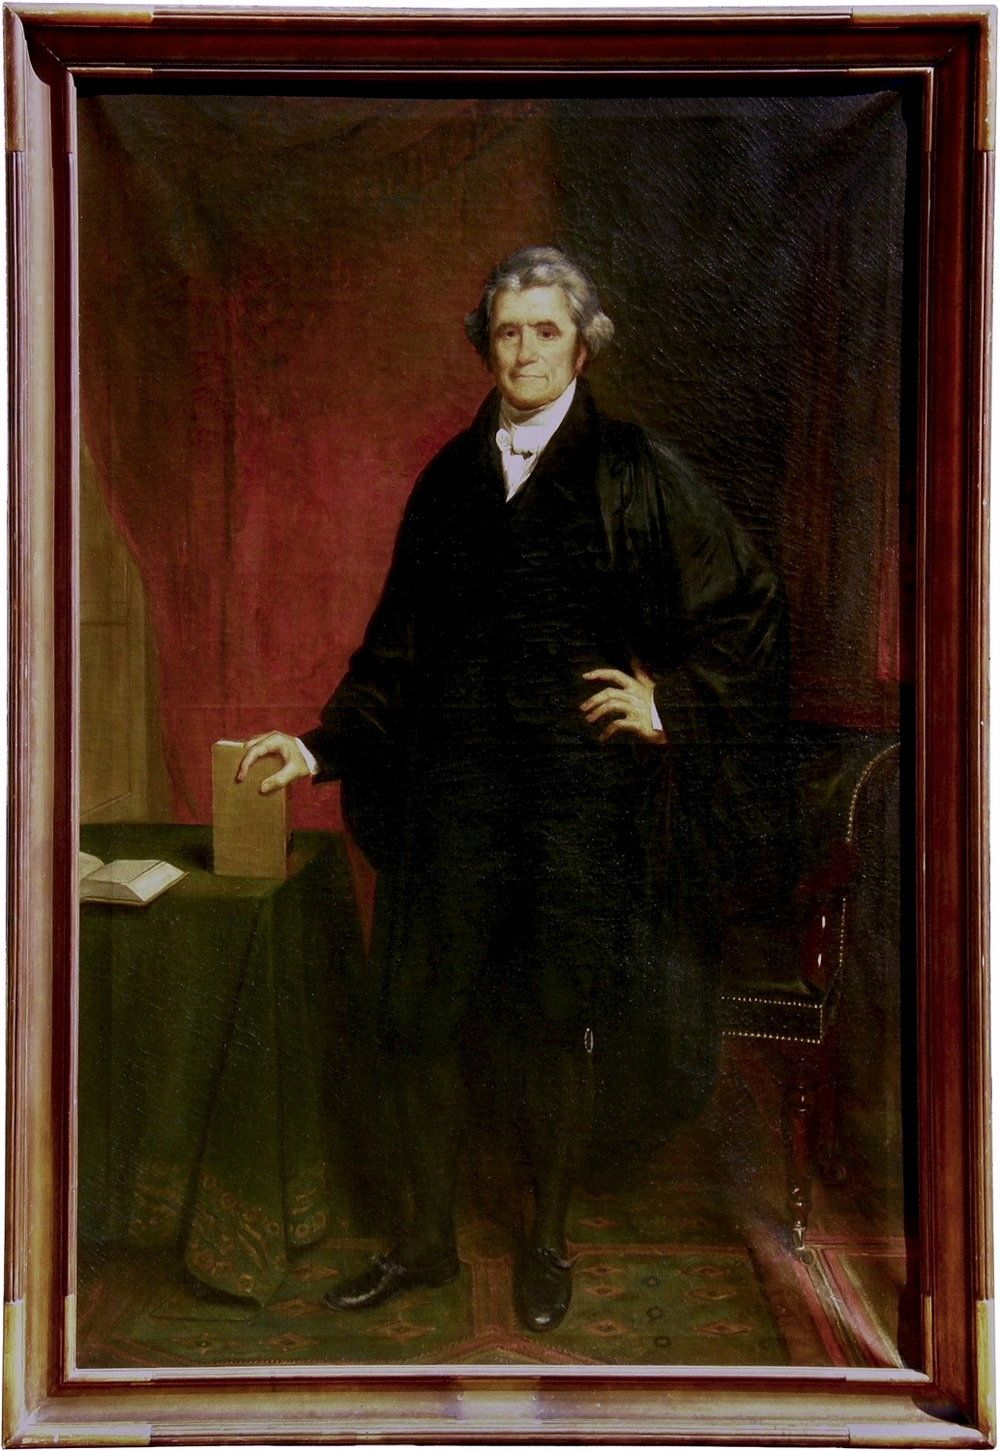 Chief Justice John Marshall 1755 1835 Artist Benjamin F Landis After The Original By Chester Harding 179 American Antiques Southern Art Southern Artist